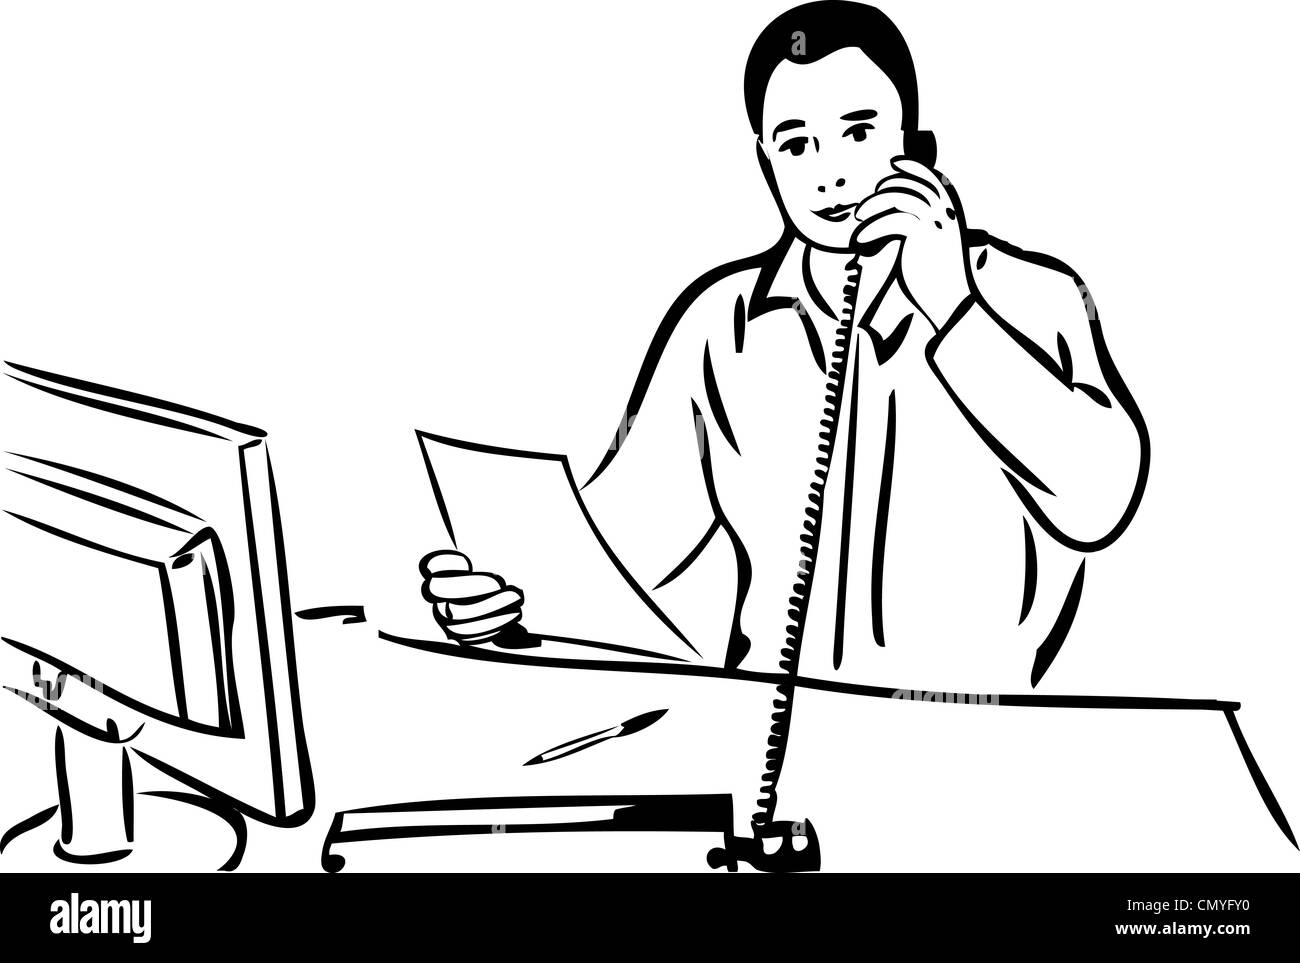 a sketch of a man talking on the phone Stock Photo ...